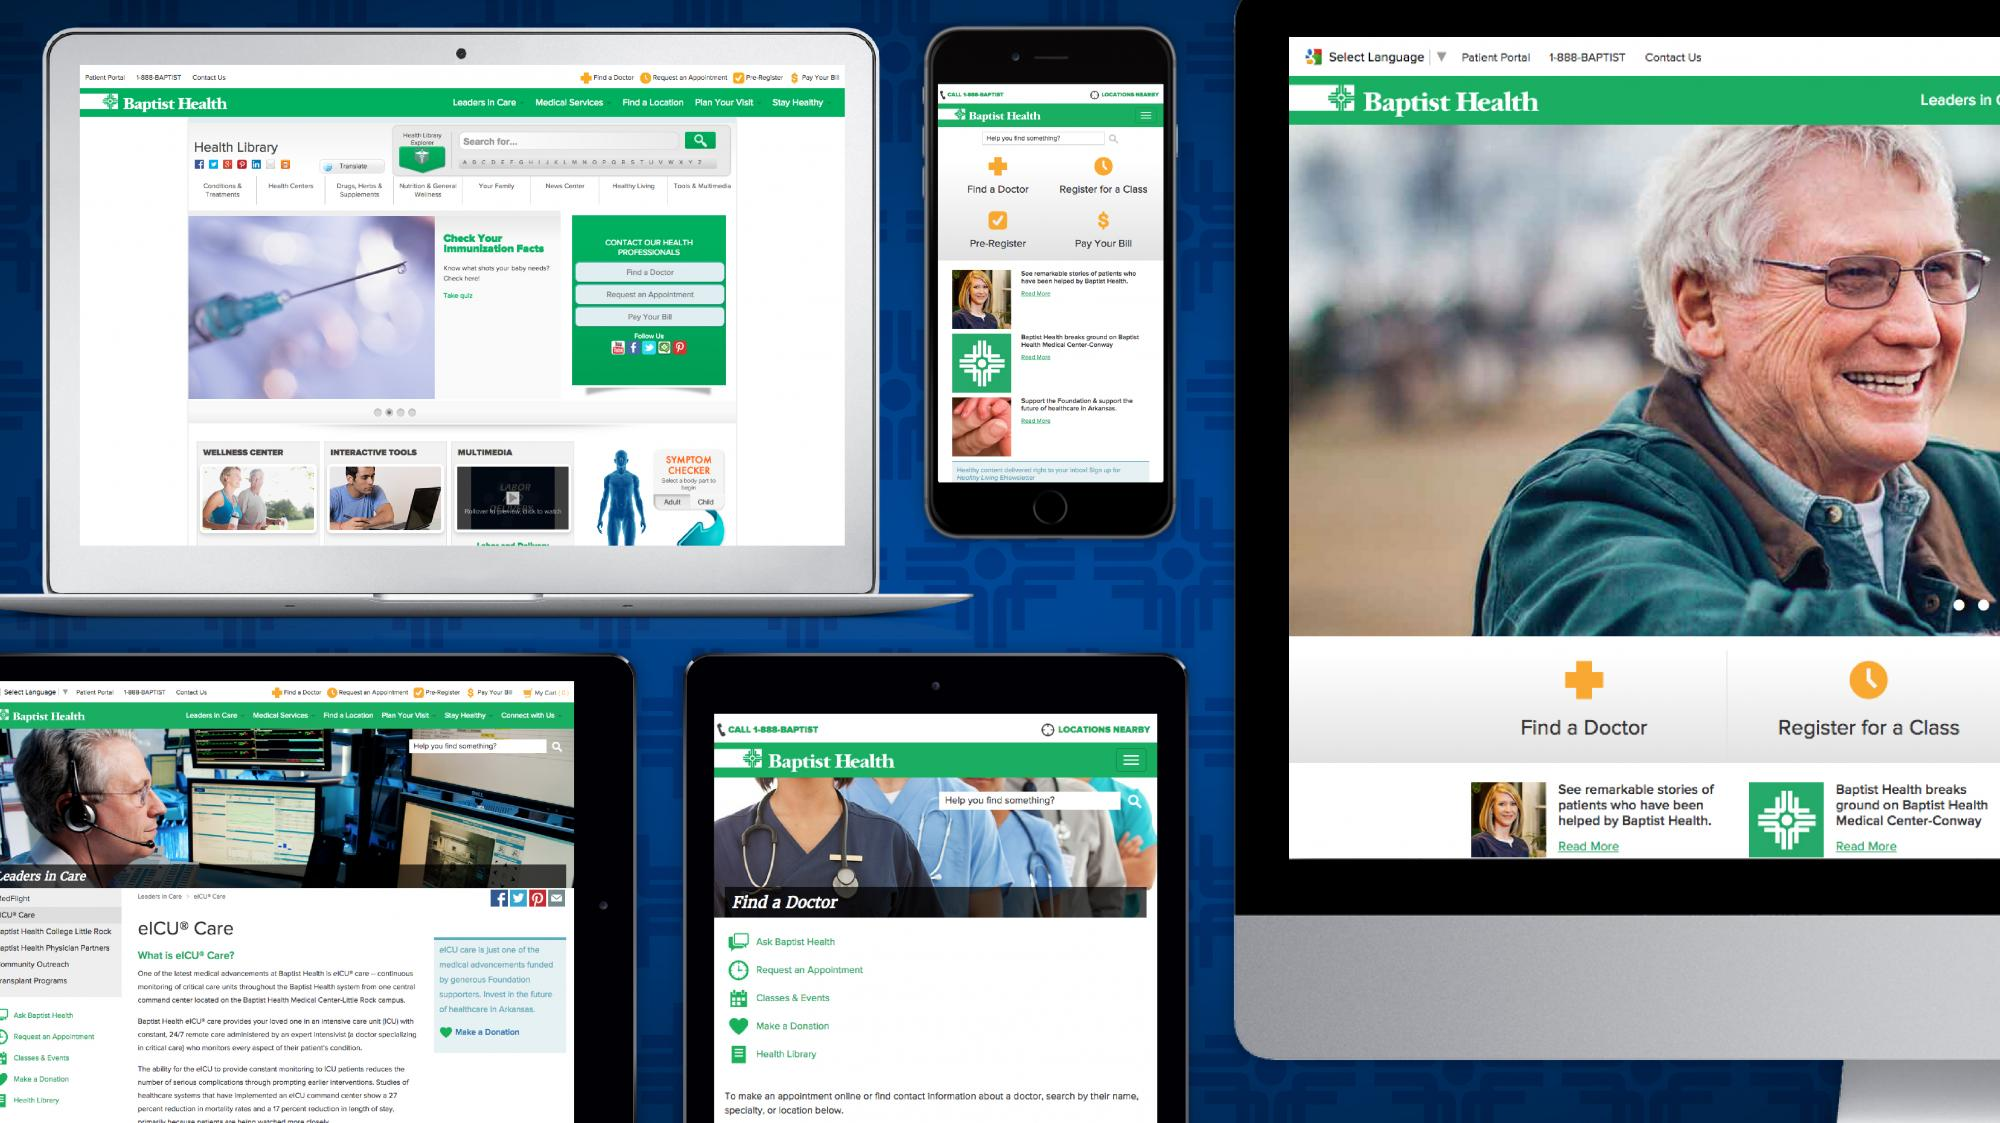 Baptist Health Website Pages Screenshots #1